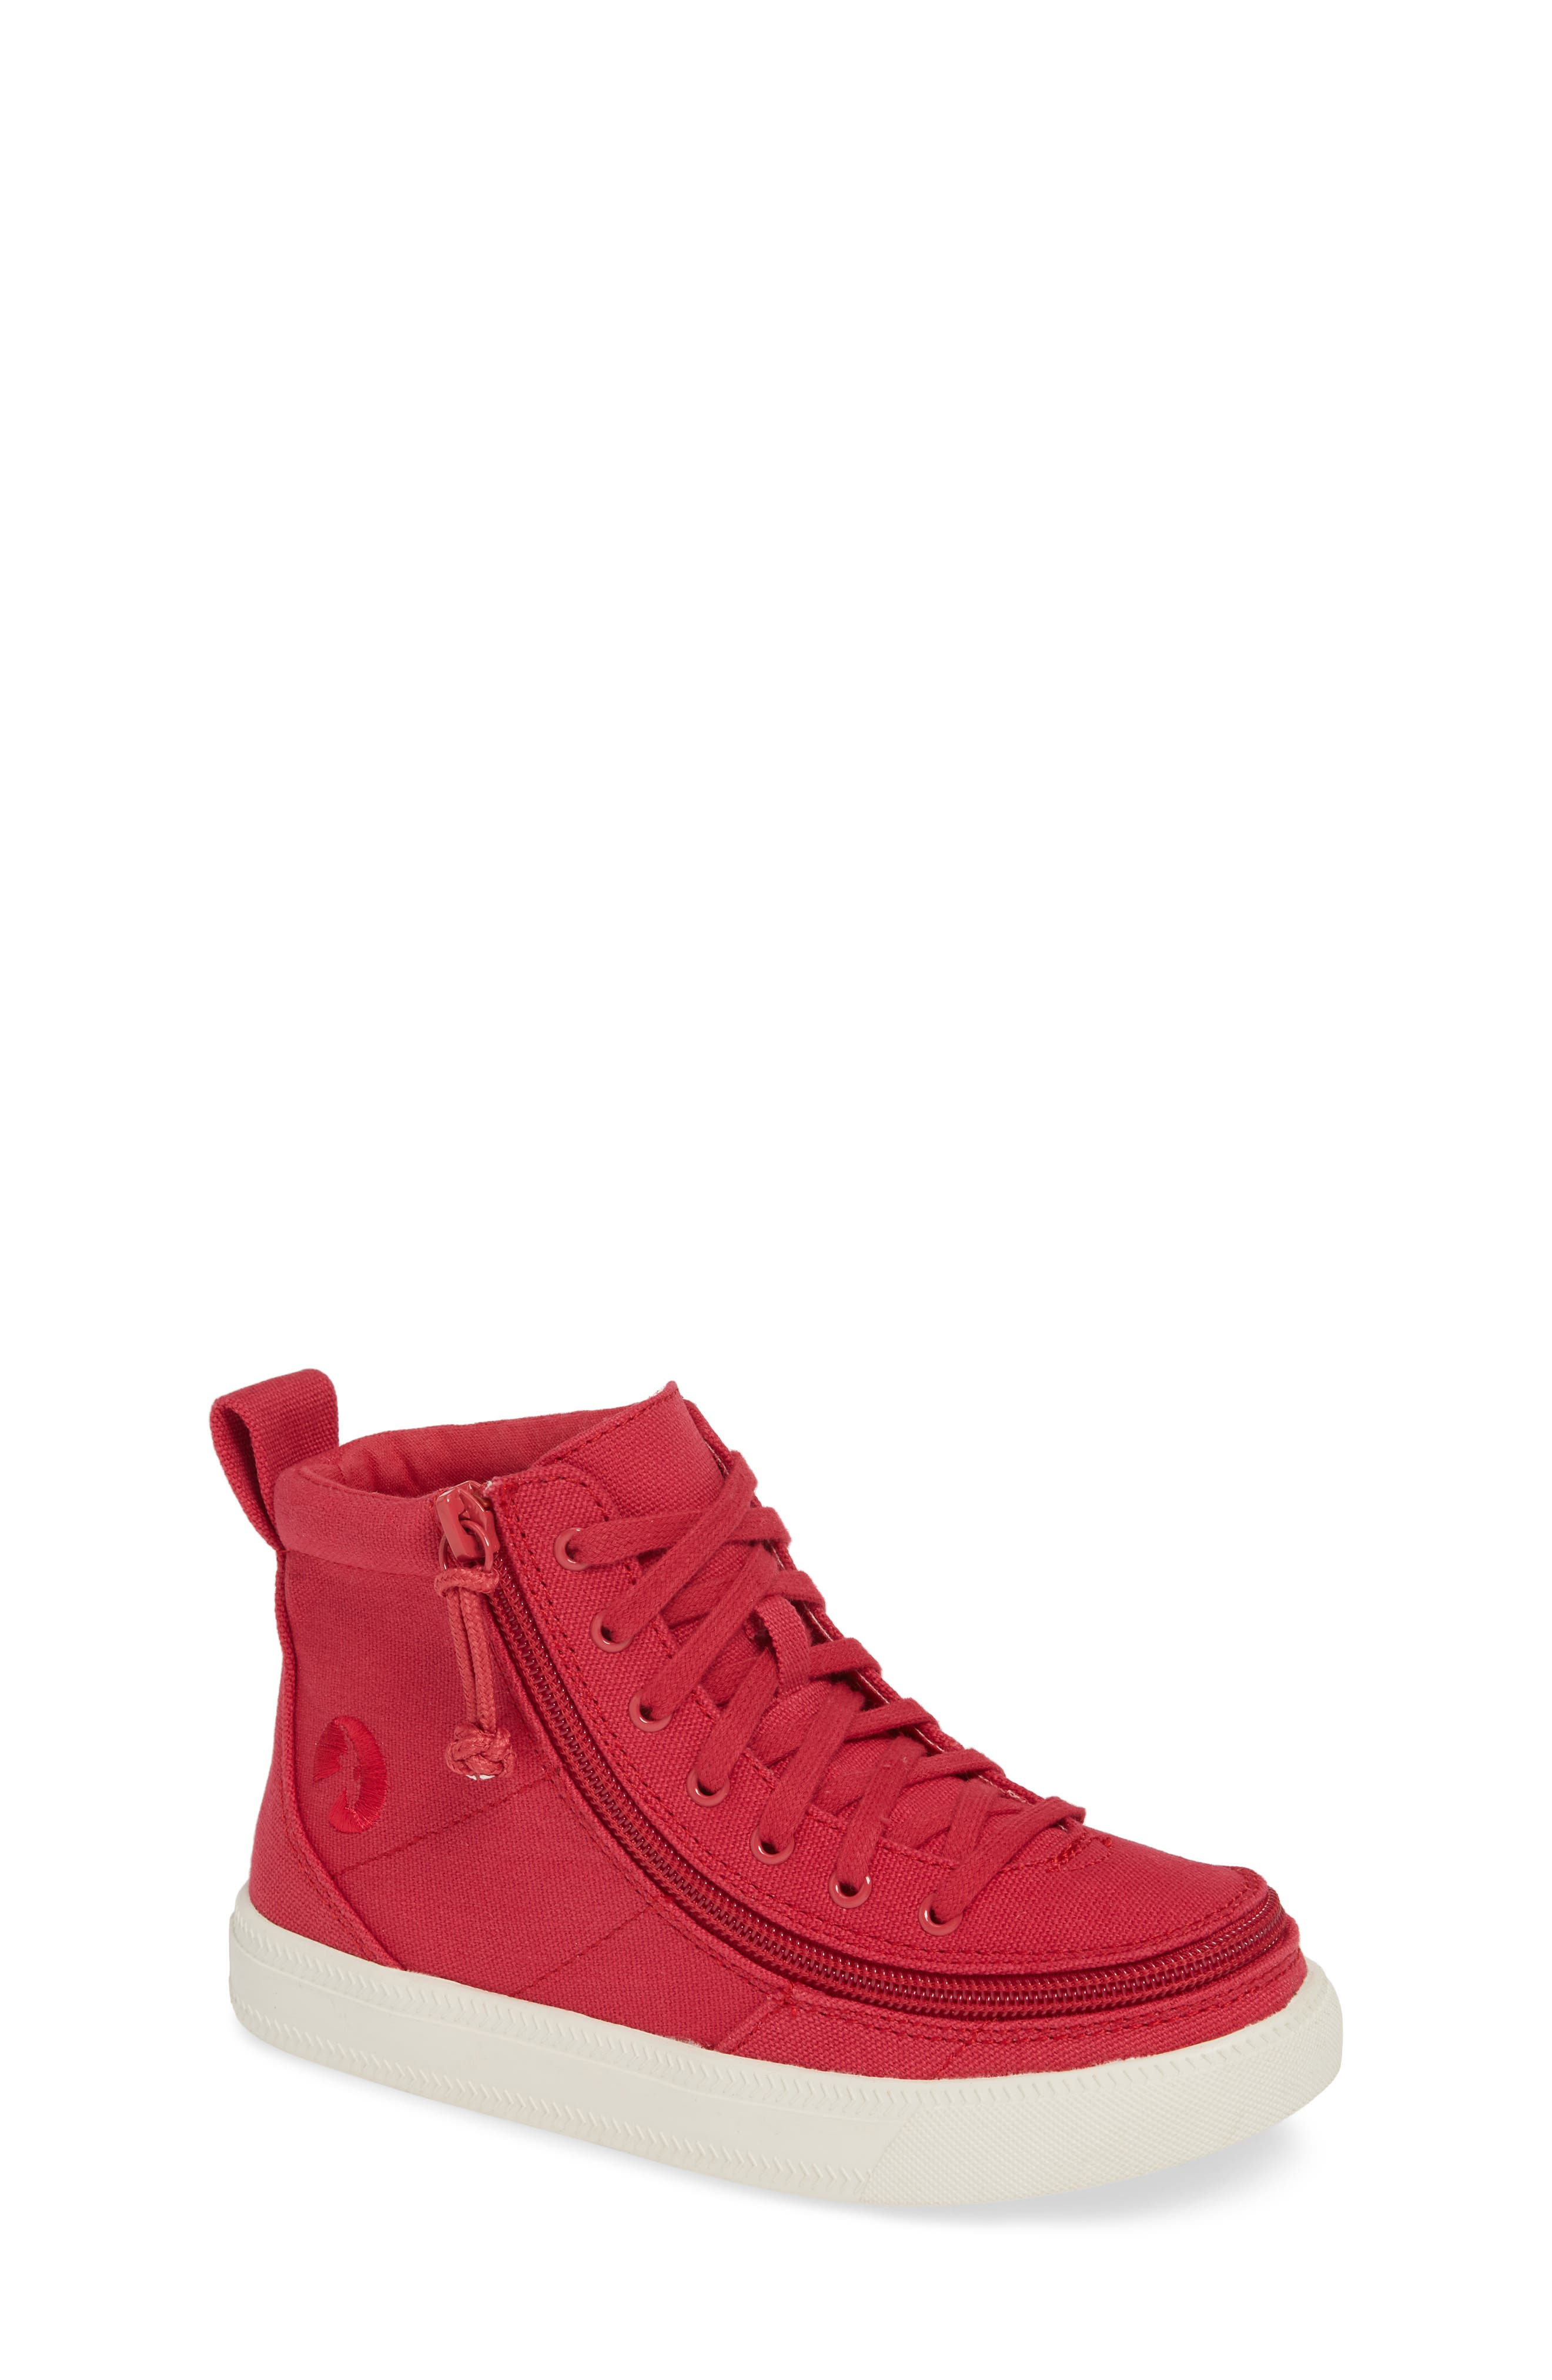 Image of BILLY Footwear Canvas Lace-Up Zip Around High Top Sneaker